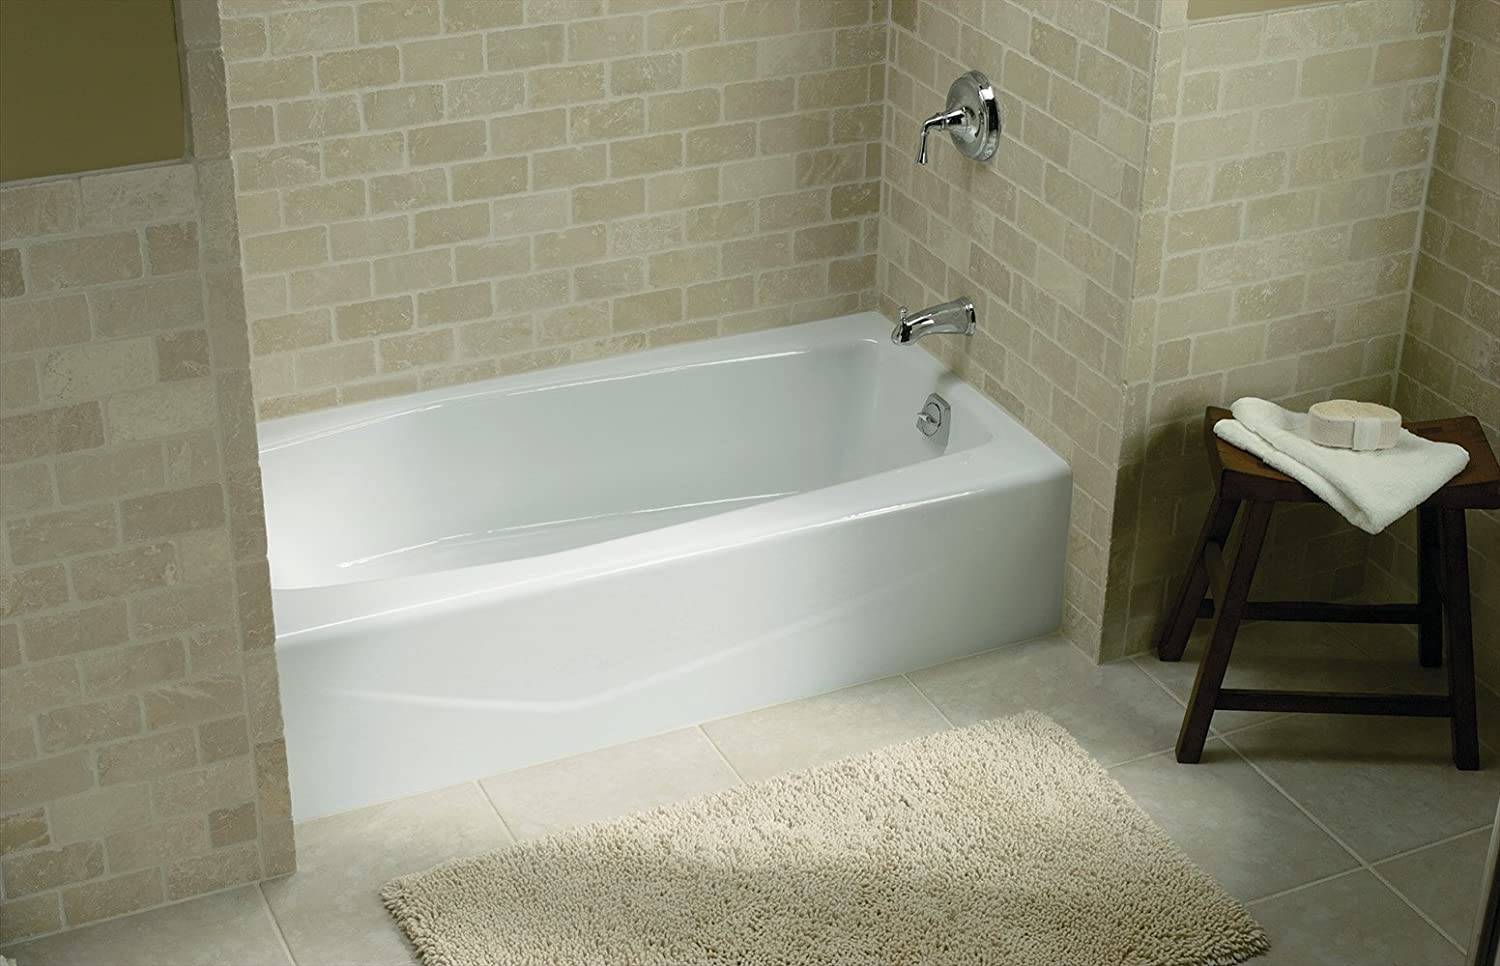 Ordinaire KOHLER K 716 0 Villager Bath With Right Hand Drain, White   Freestanding  Bathtubs   Amazon.com